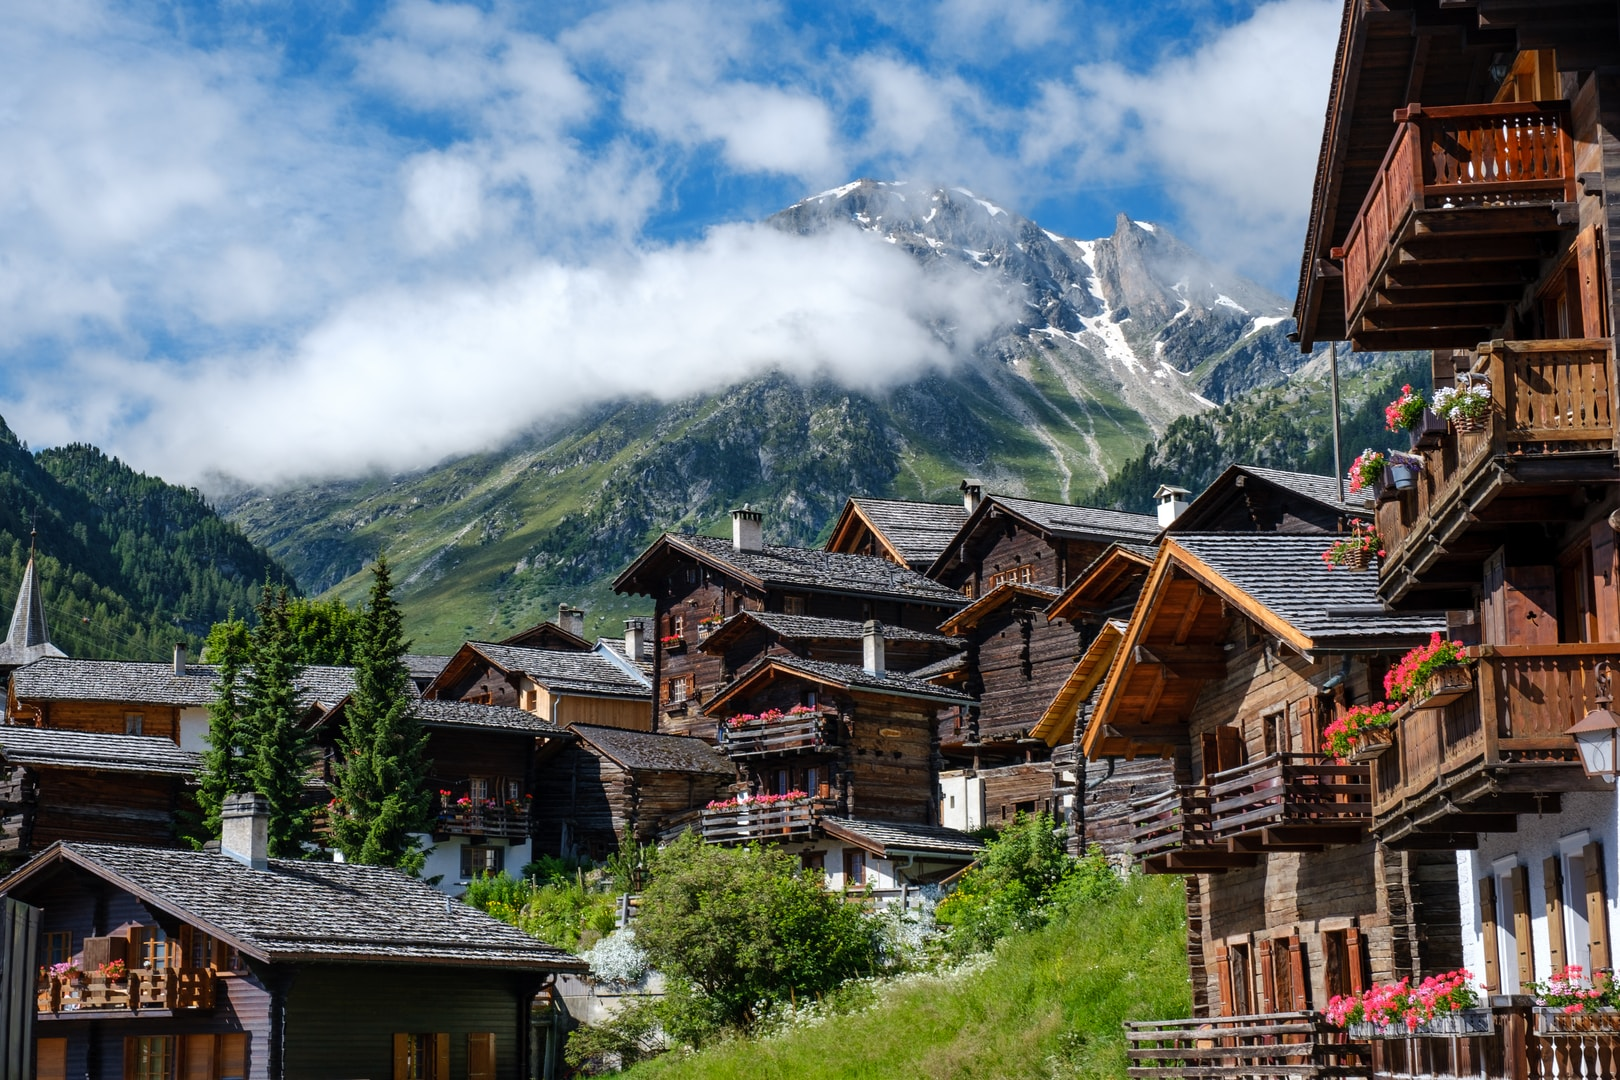 brown wooden houses near green trees and mountain under white clouds during daytime